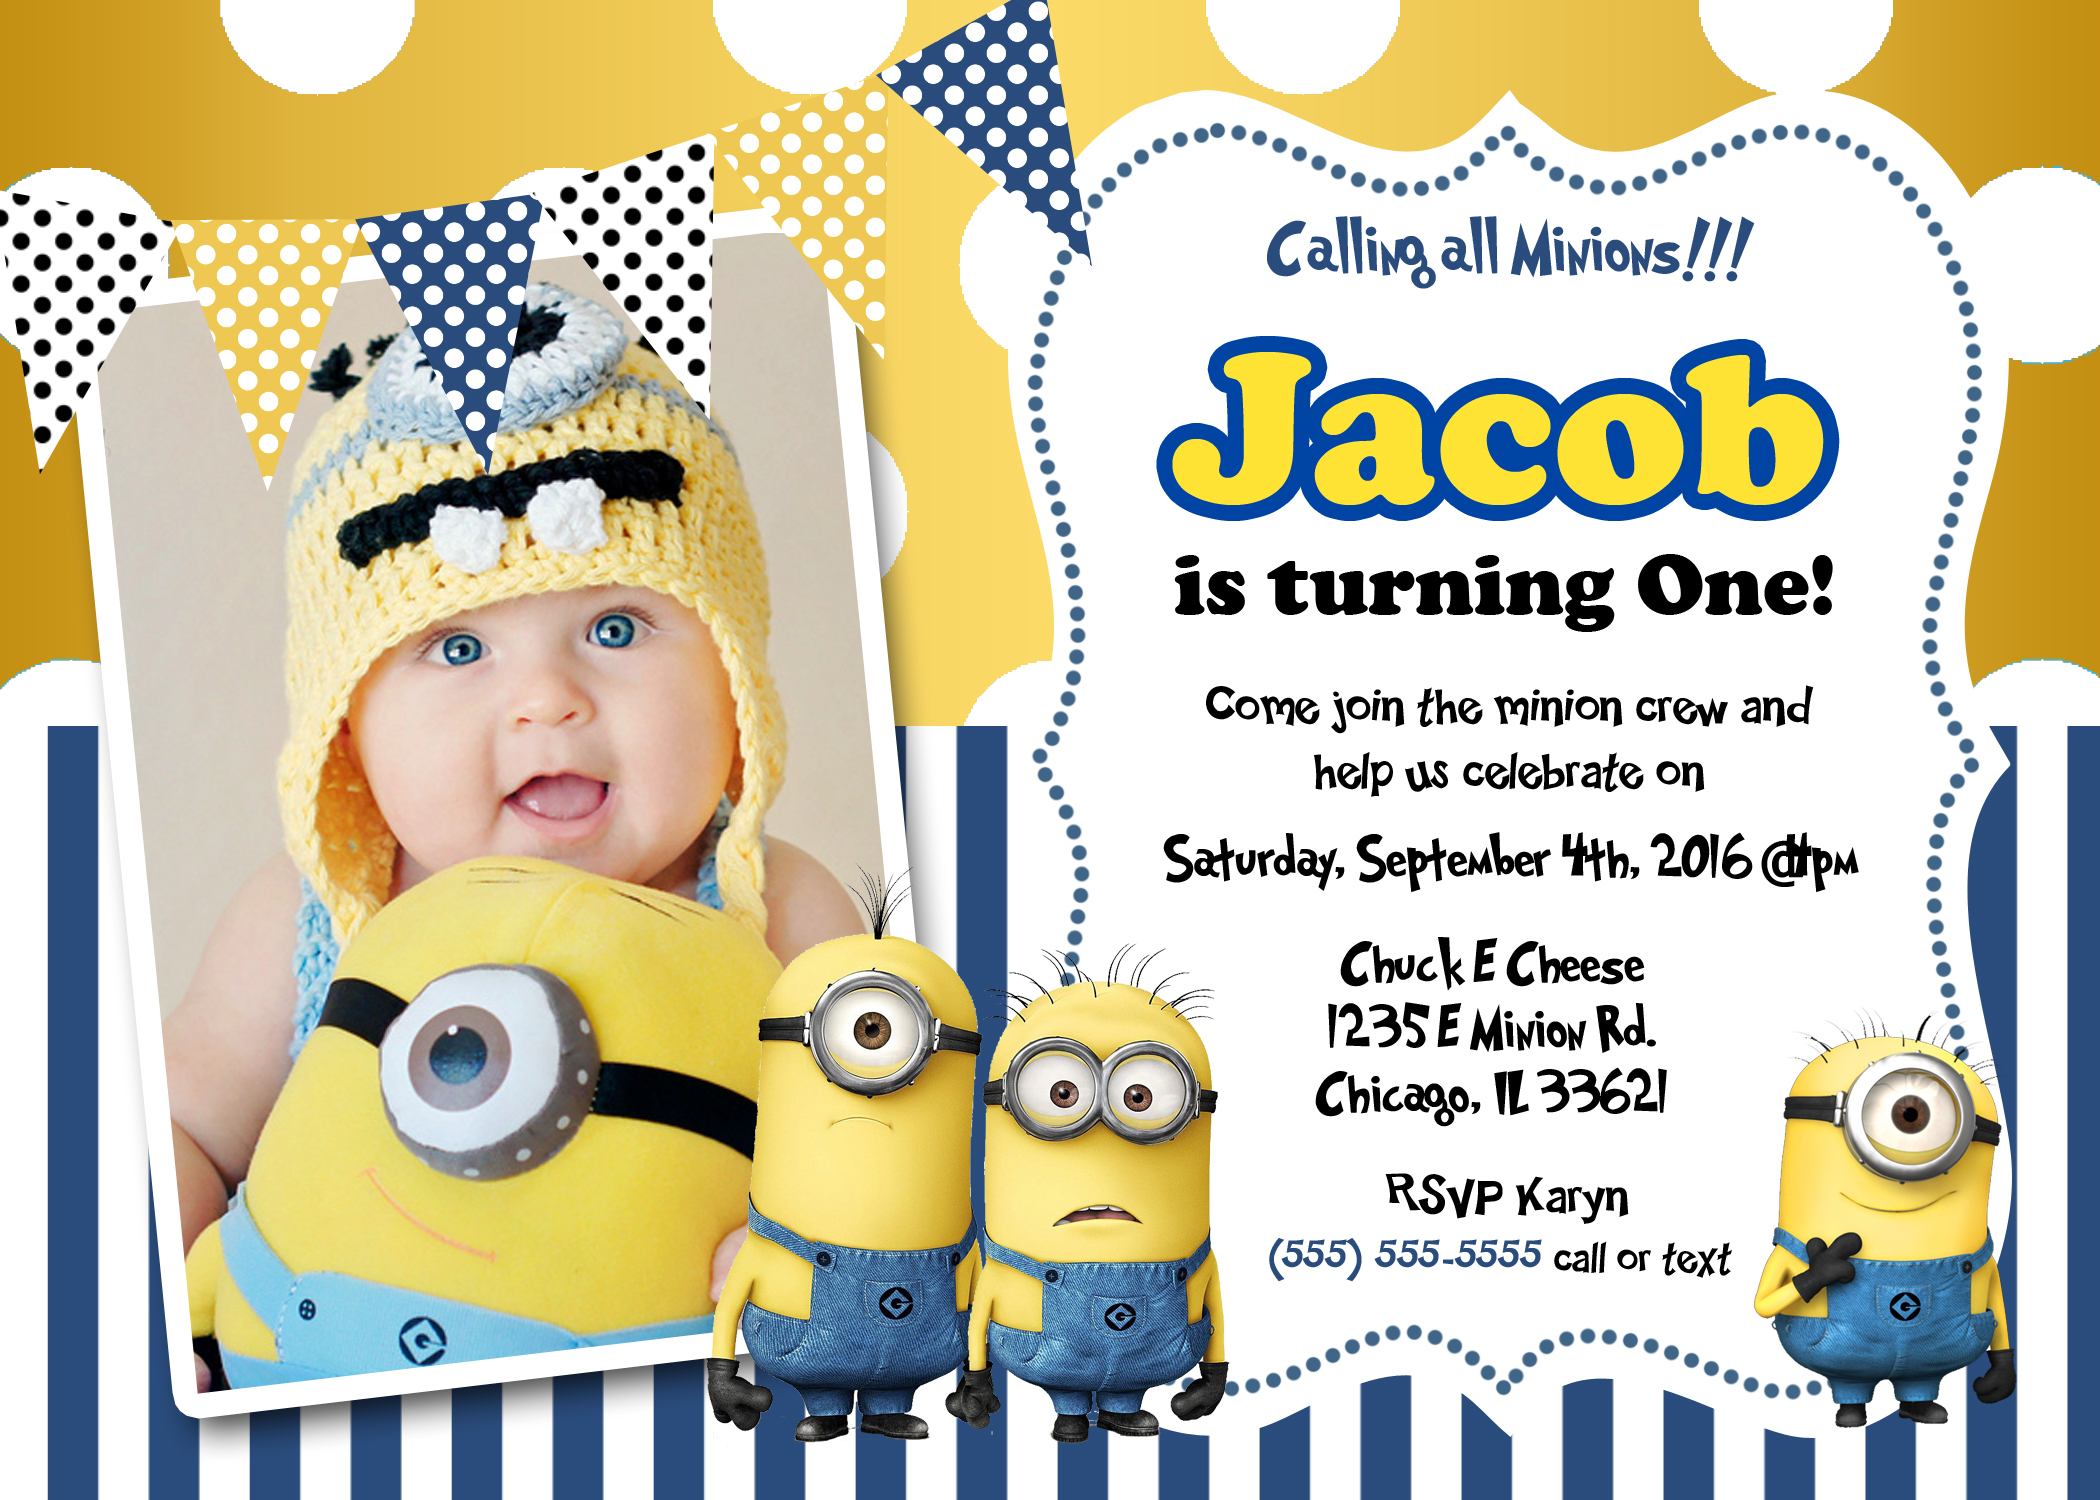 minions 1st birthday invitation templates ; Minions-birthday-invitations-to-inspire-you-how-to-create-the-birthday-invitation-with-the-best-way-1